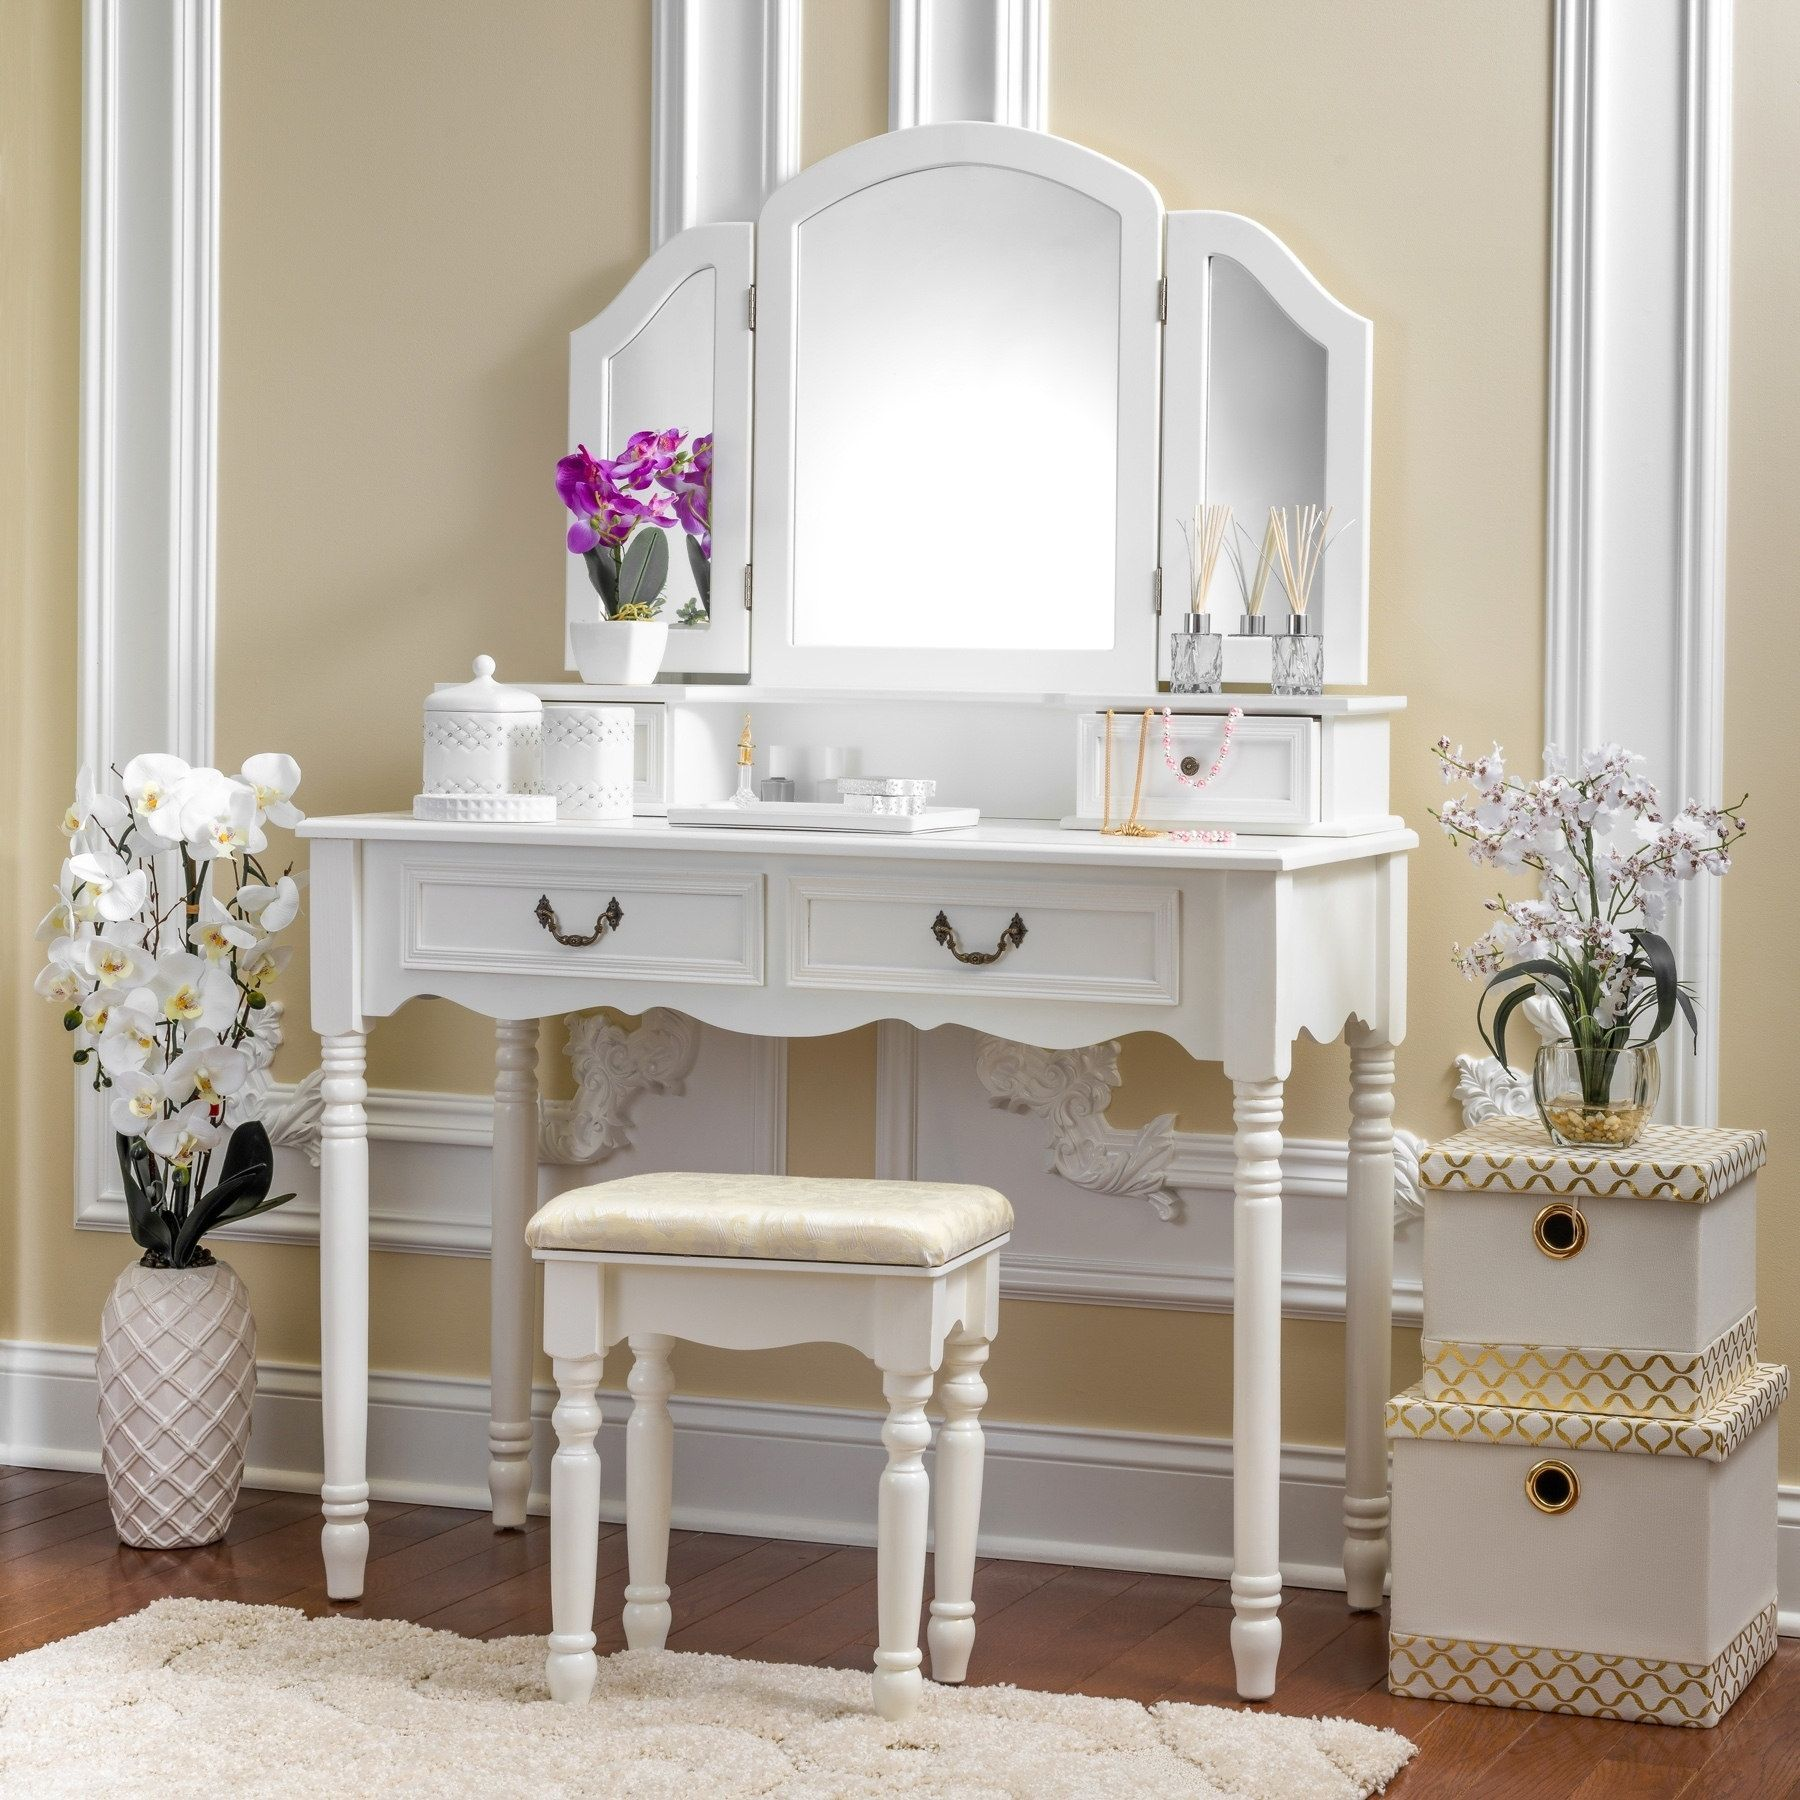 Fineboard Elegant Vanity Dressing Table Set Makeup